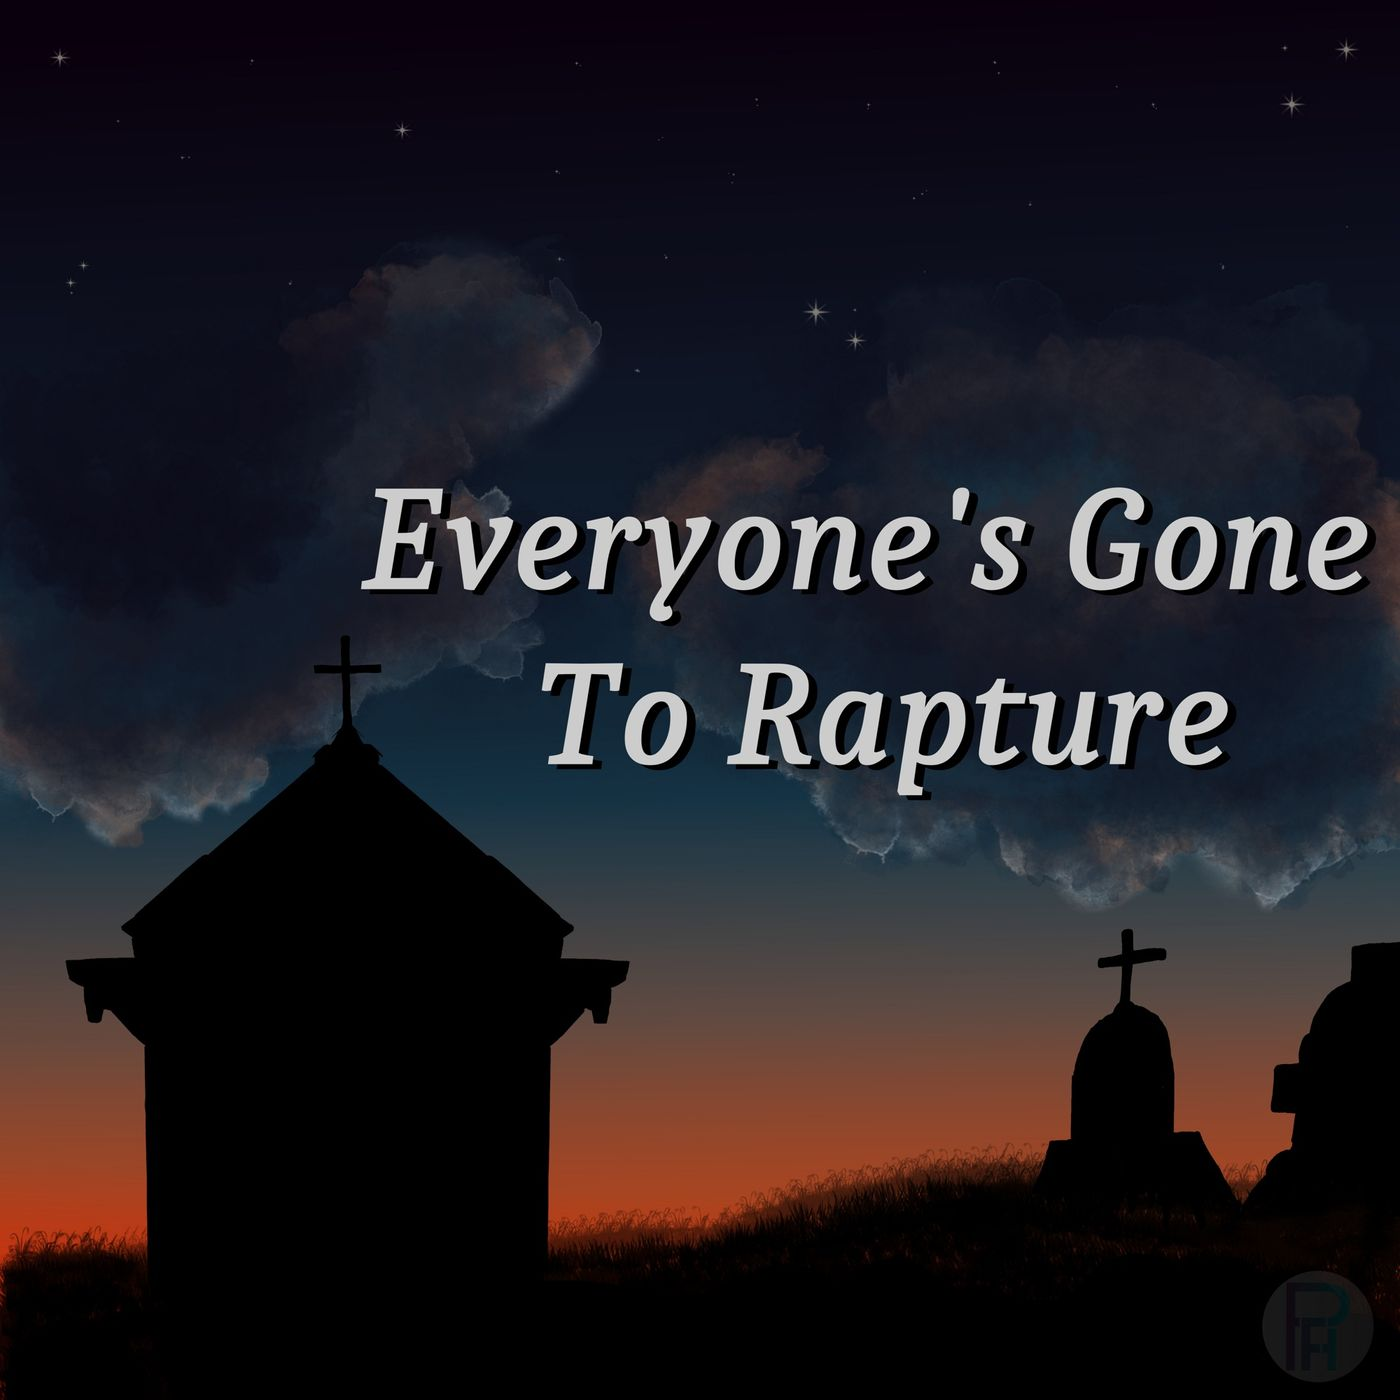 Everyone's Gone To Rapture